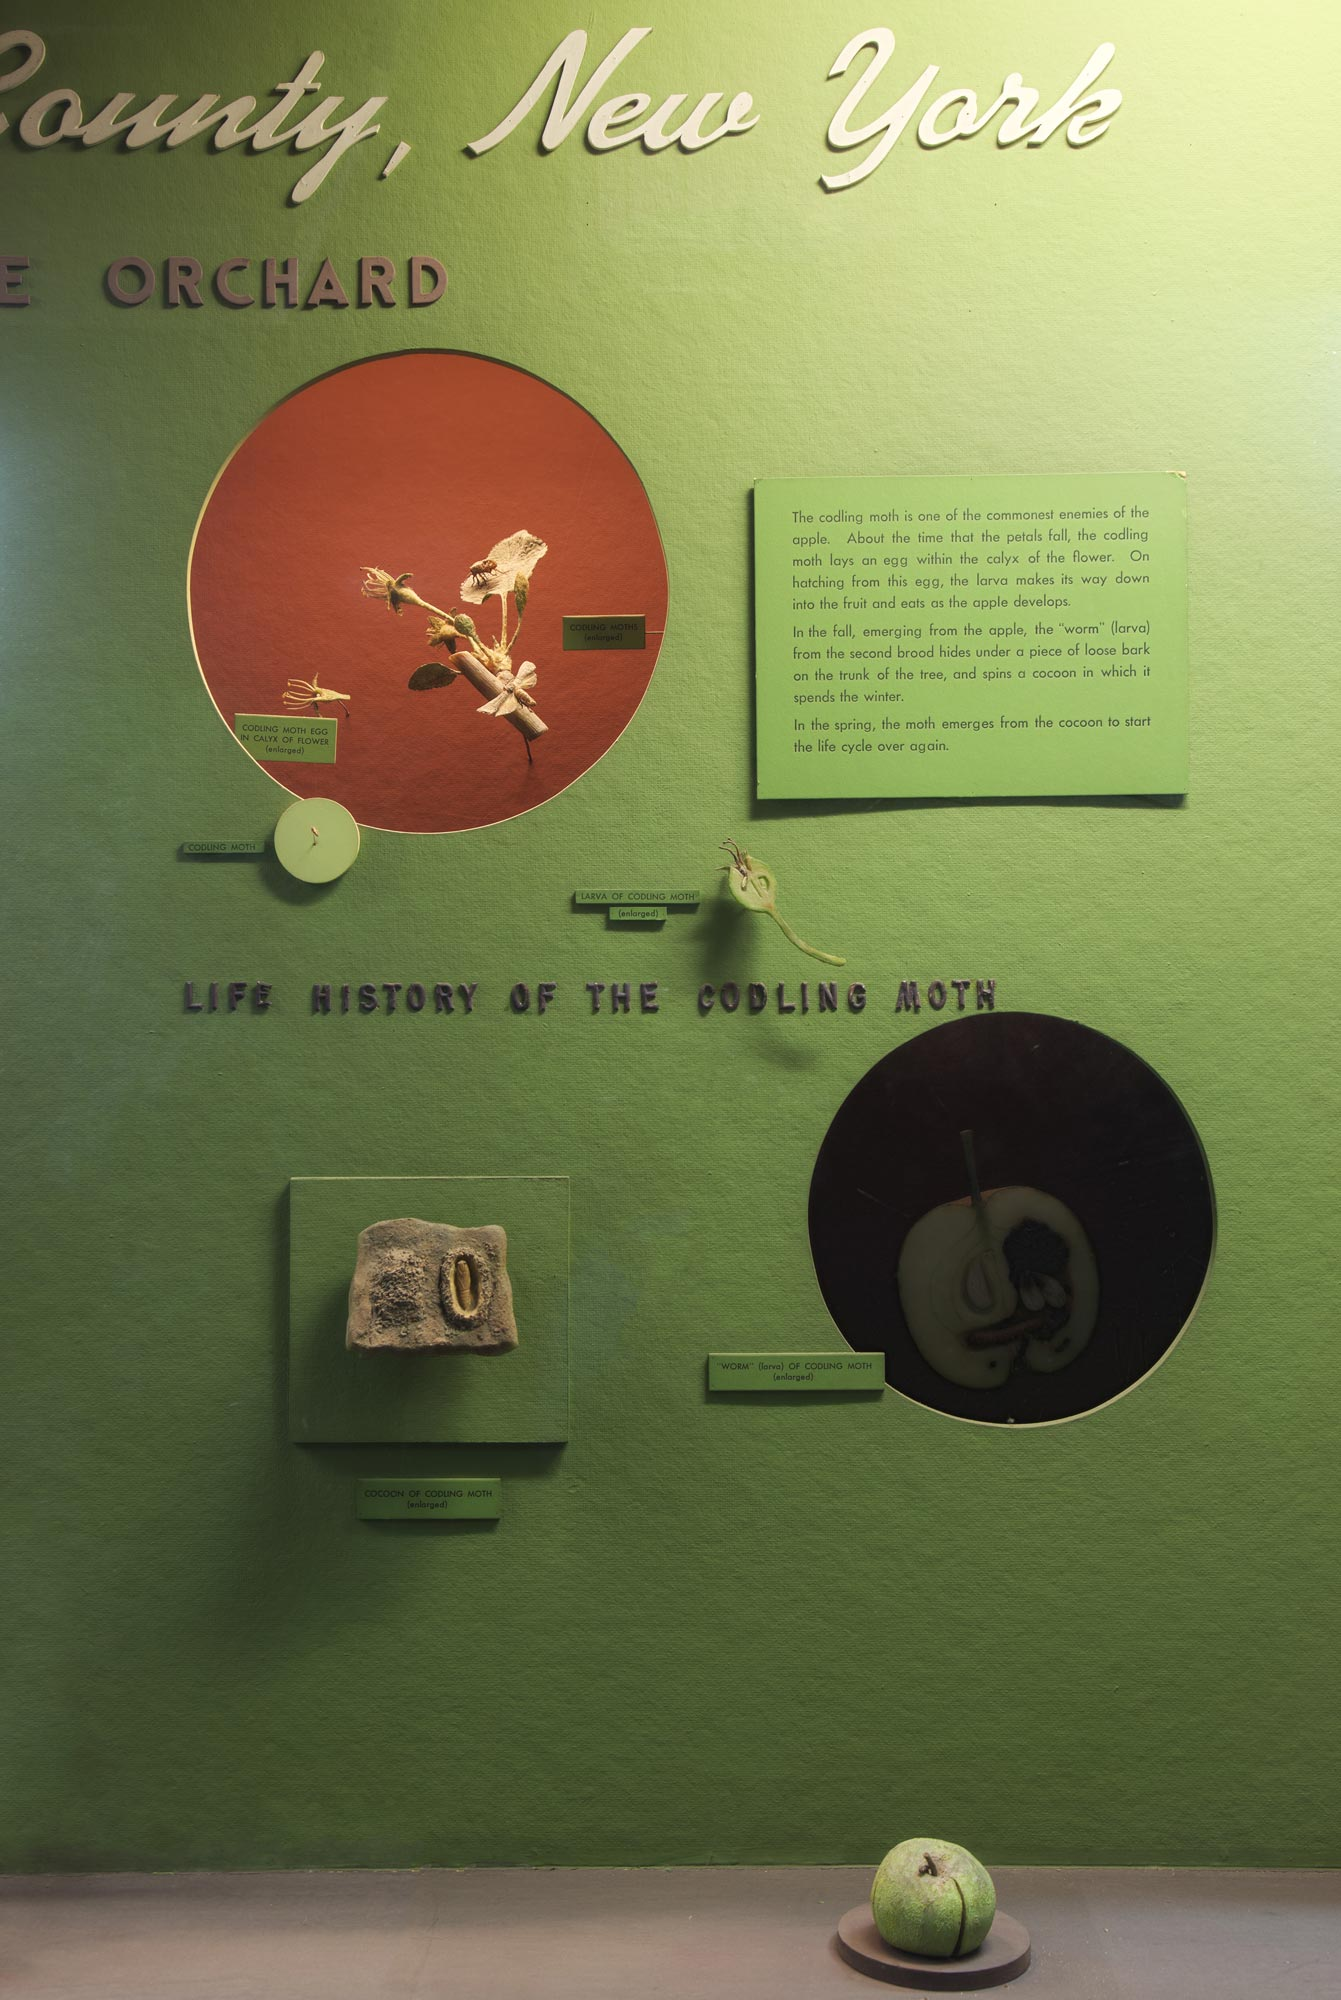 Section of a museum case showing text and models illustrating the life and effects of the codling moth.